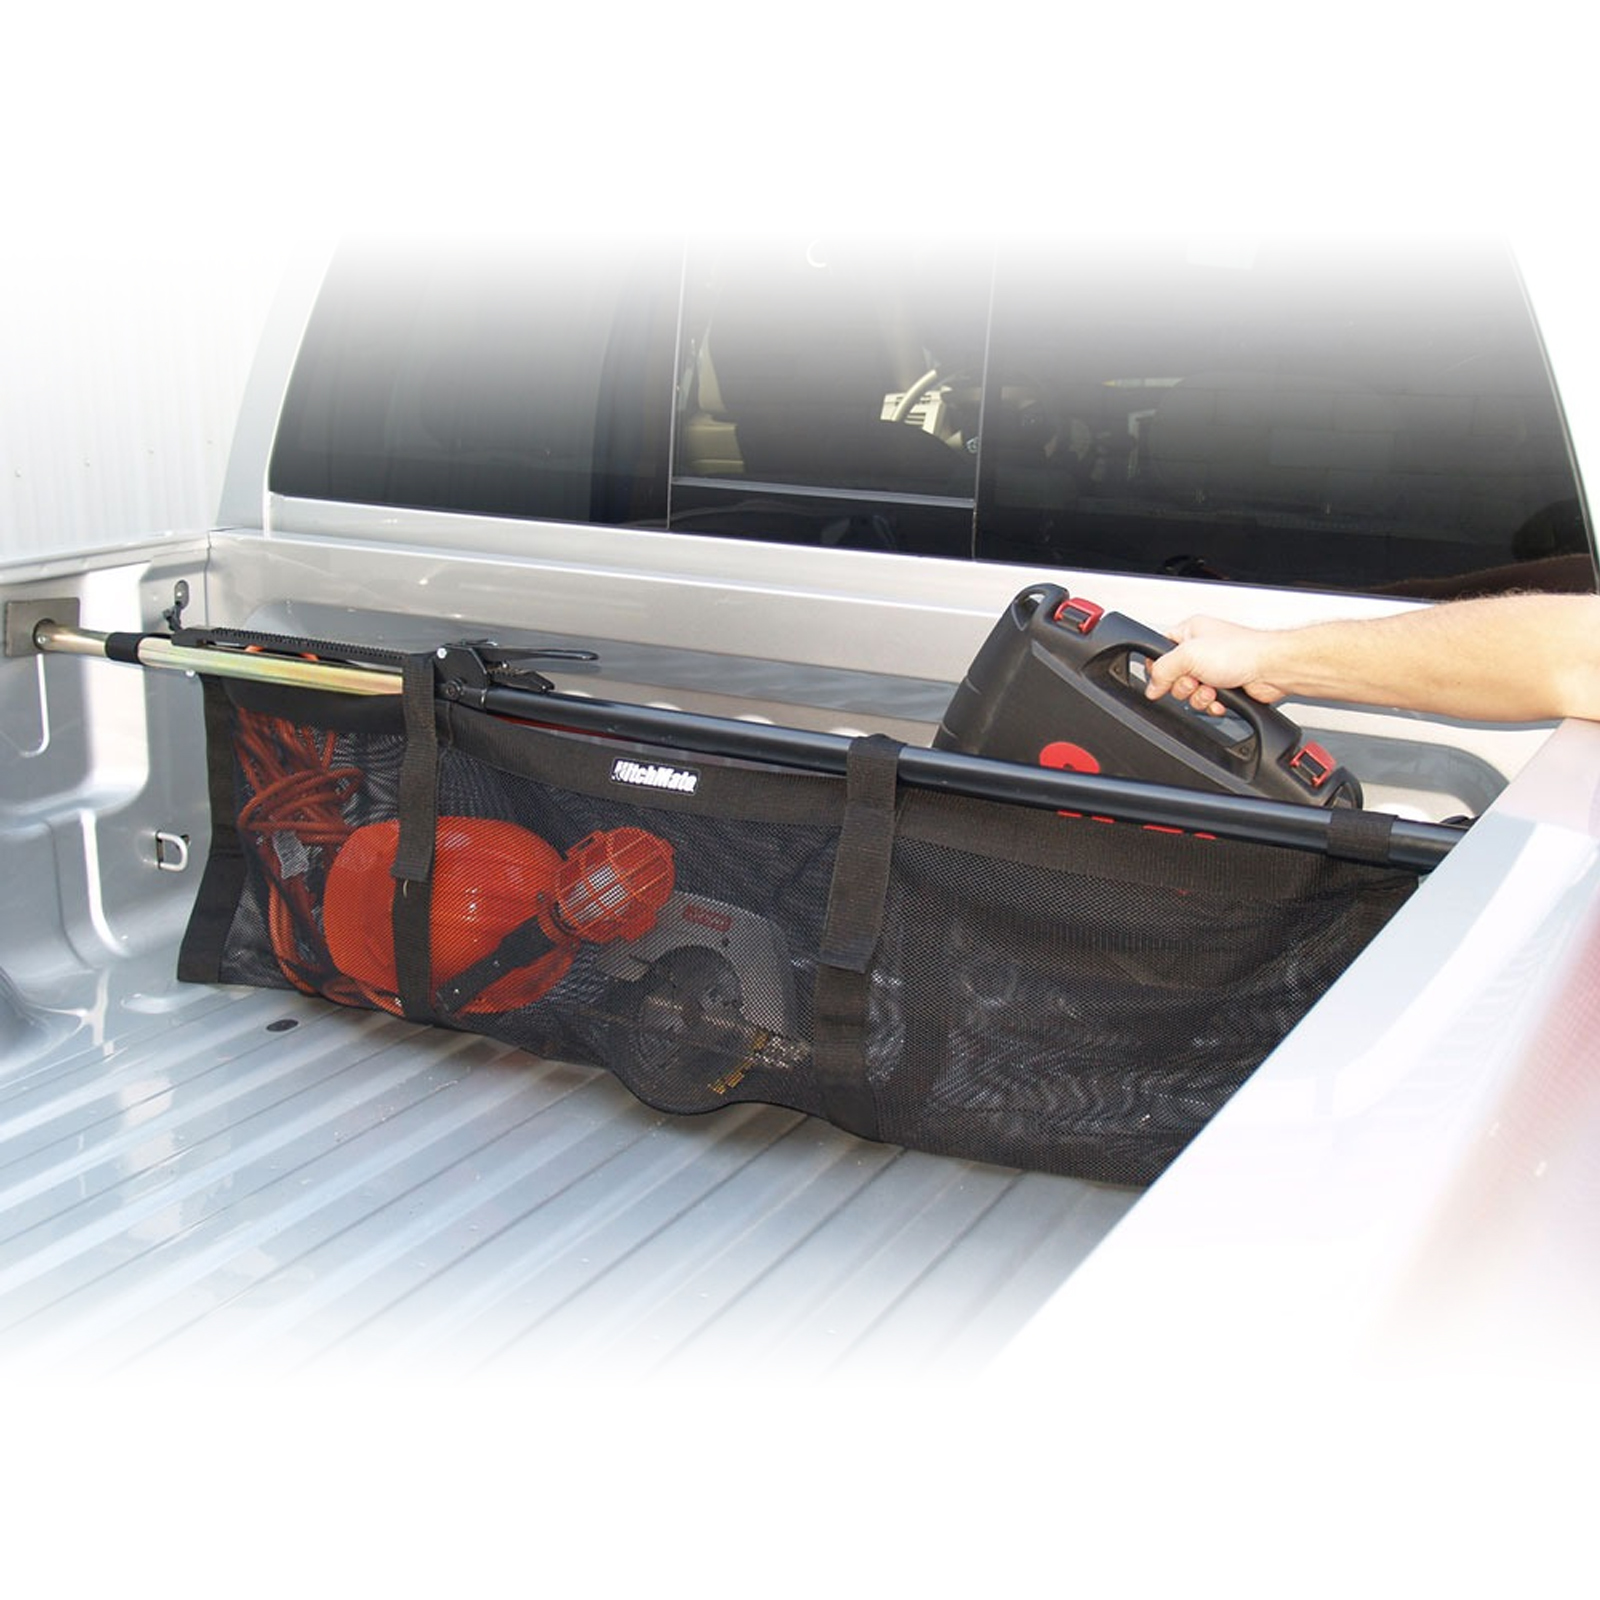 Hitchmate Truck Bed Net Cargo Carrying Bag Organizer Tailgate Accessory - Black